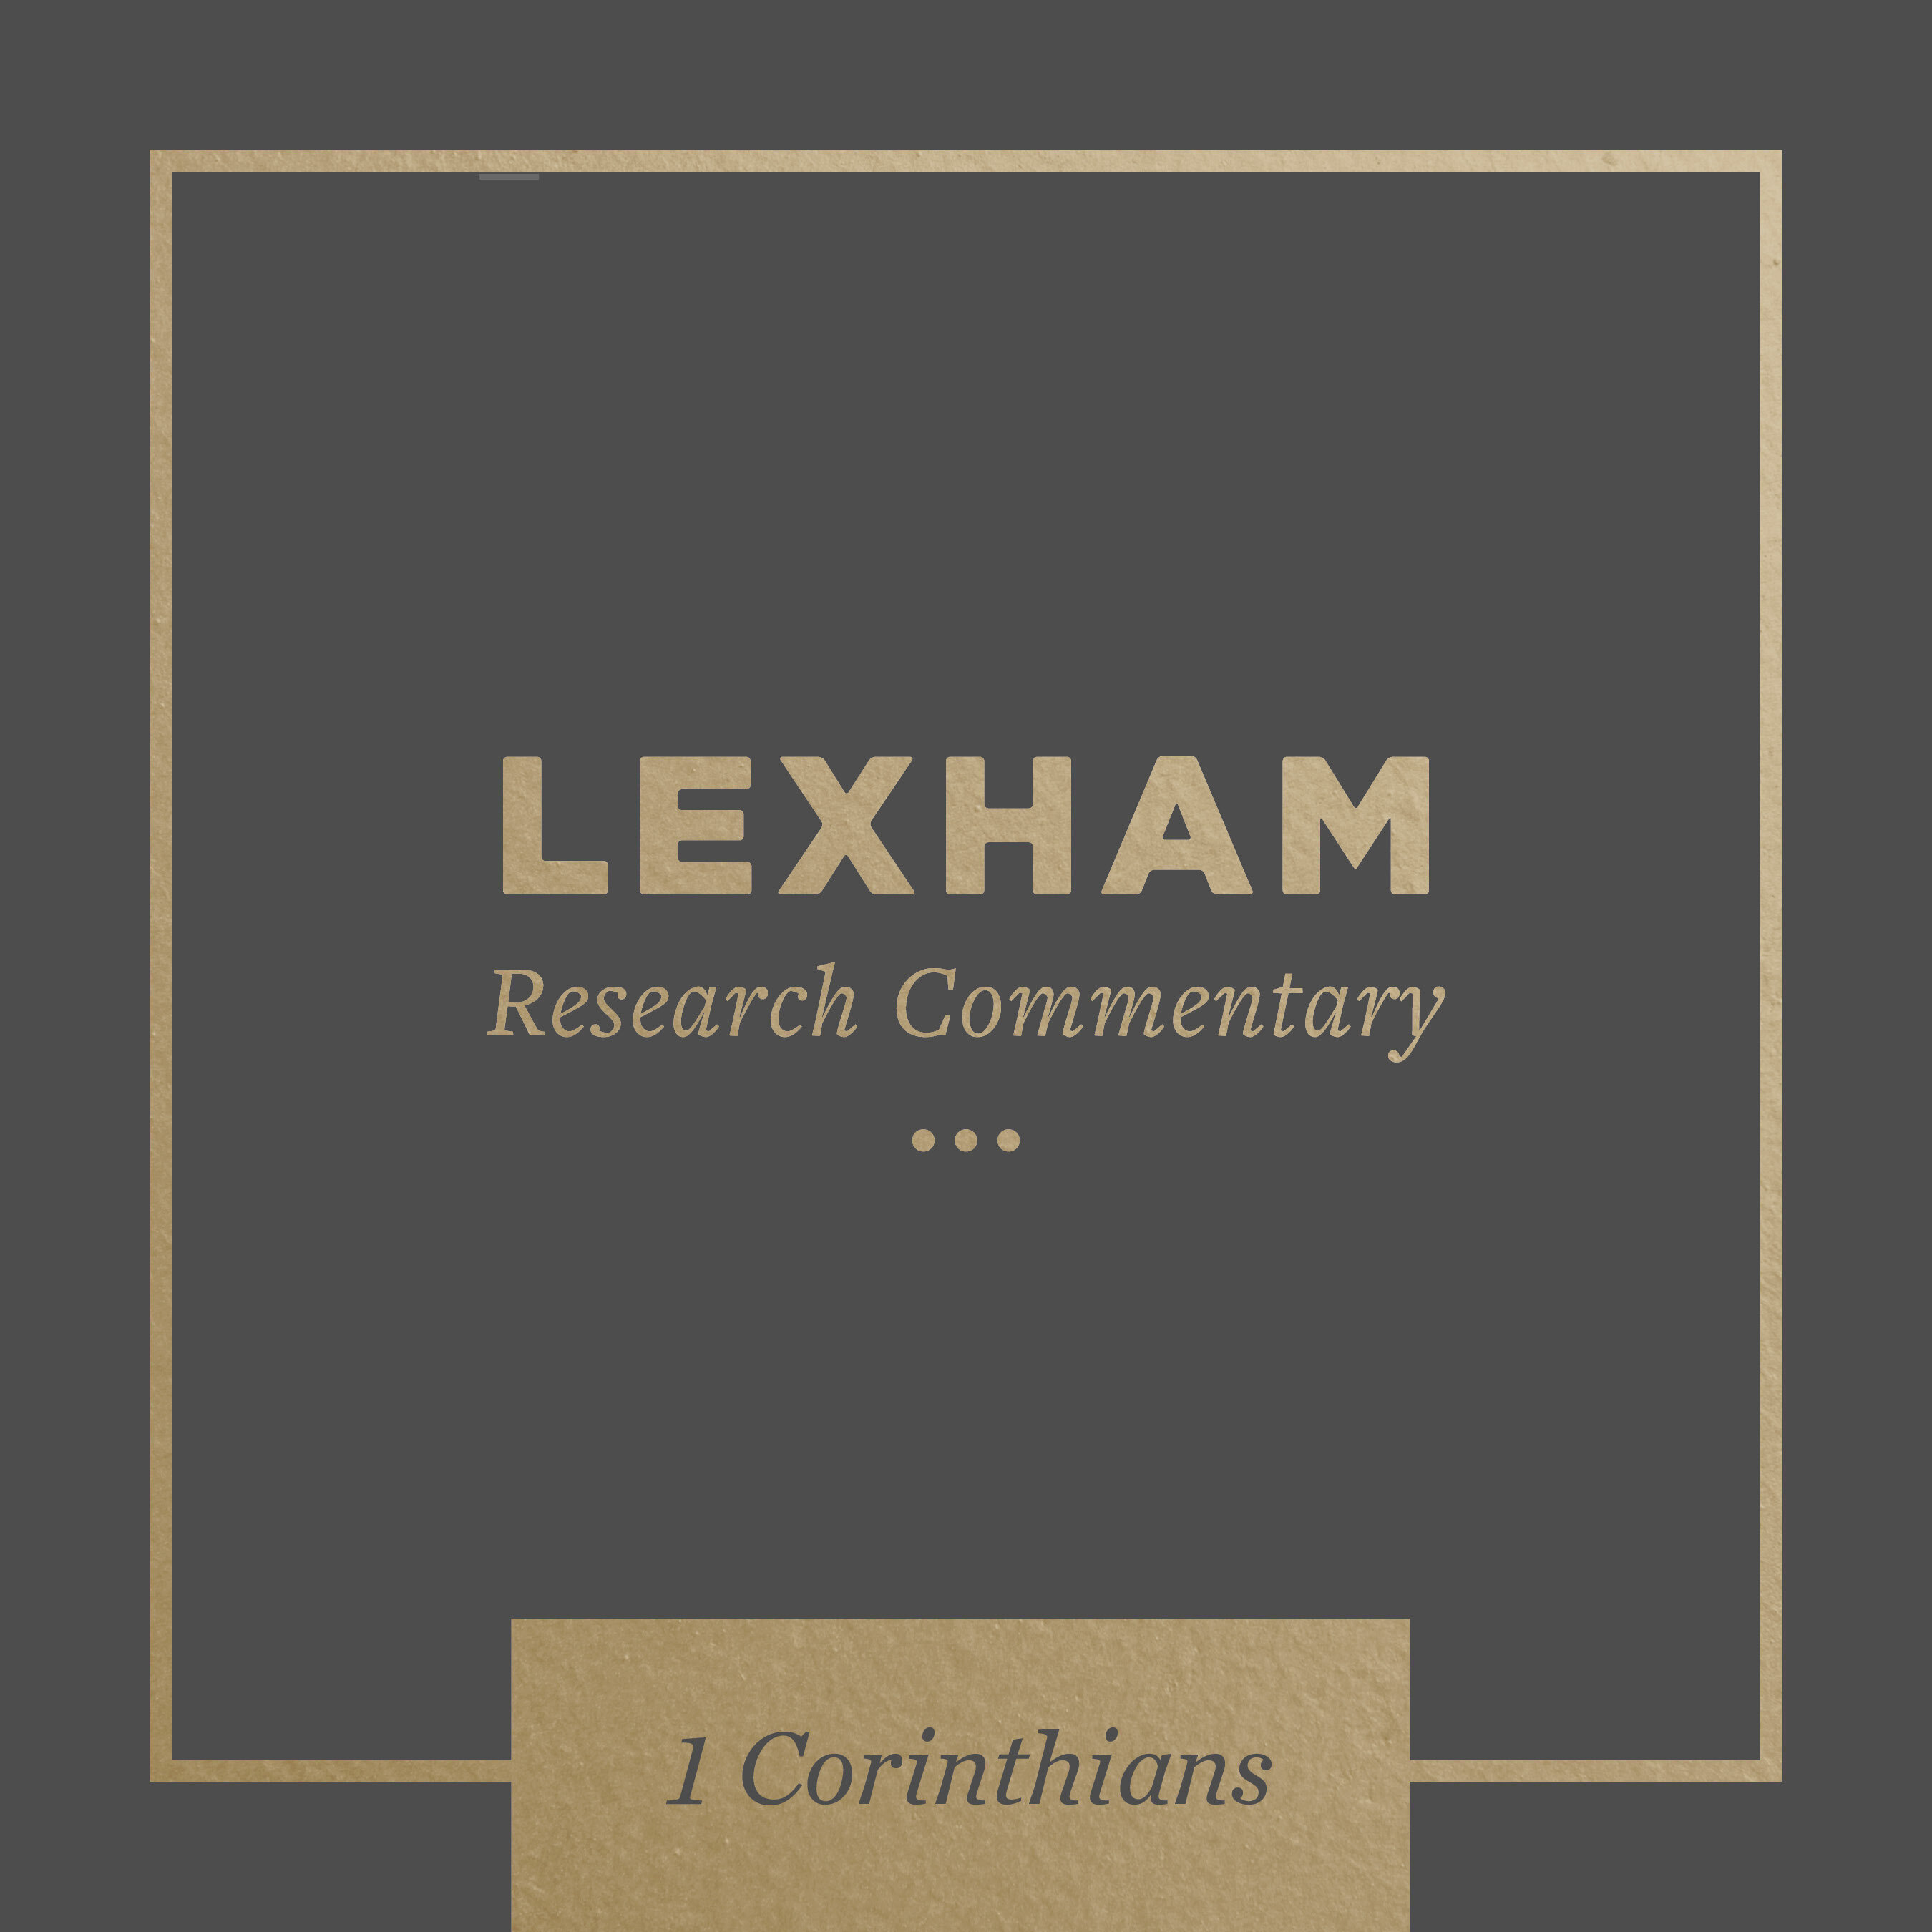 Lexham Research Commentary: 1 Corinthians